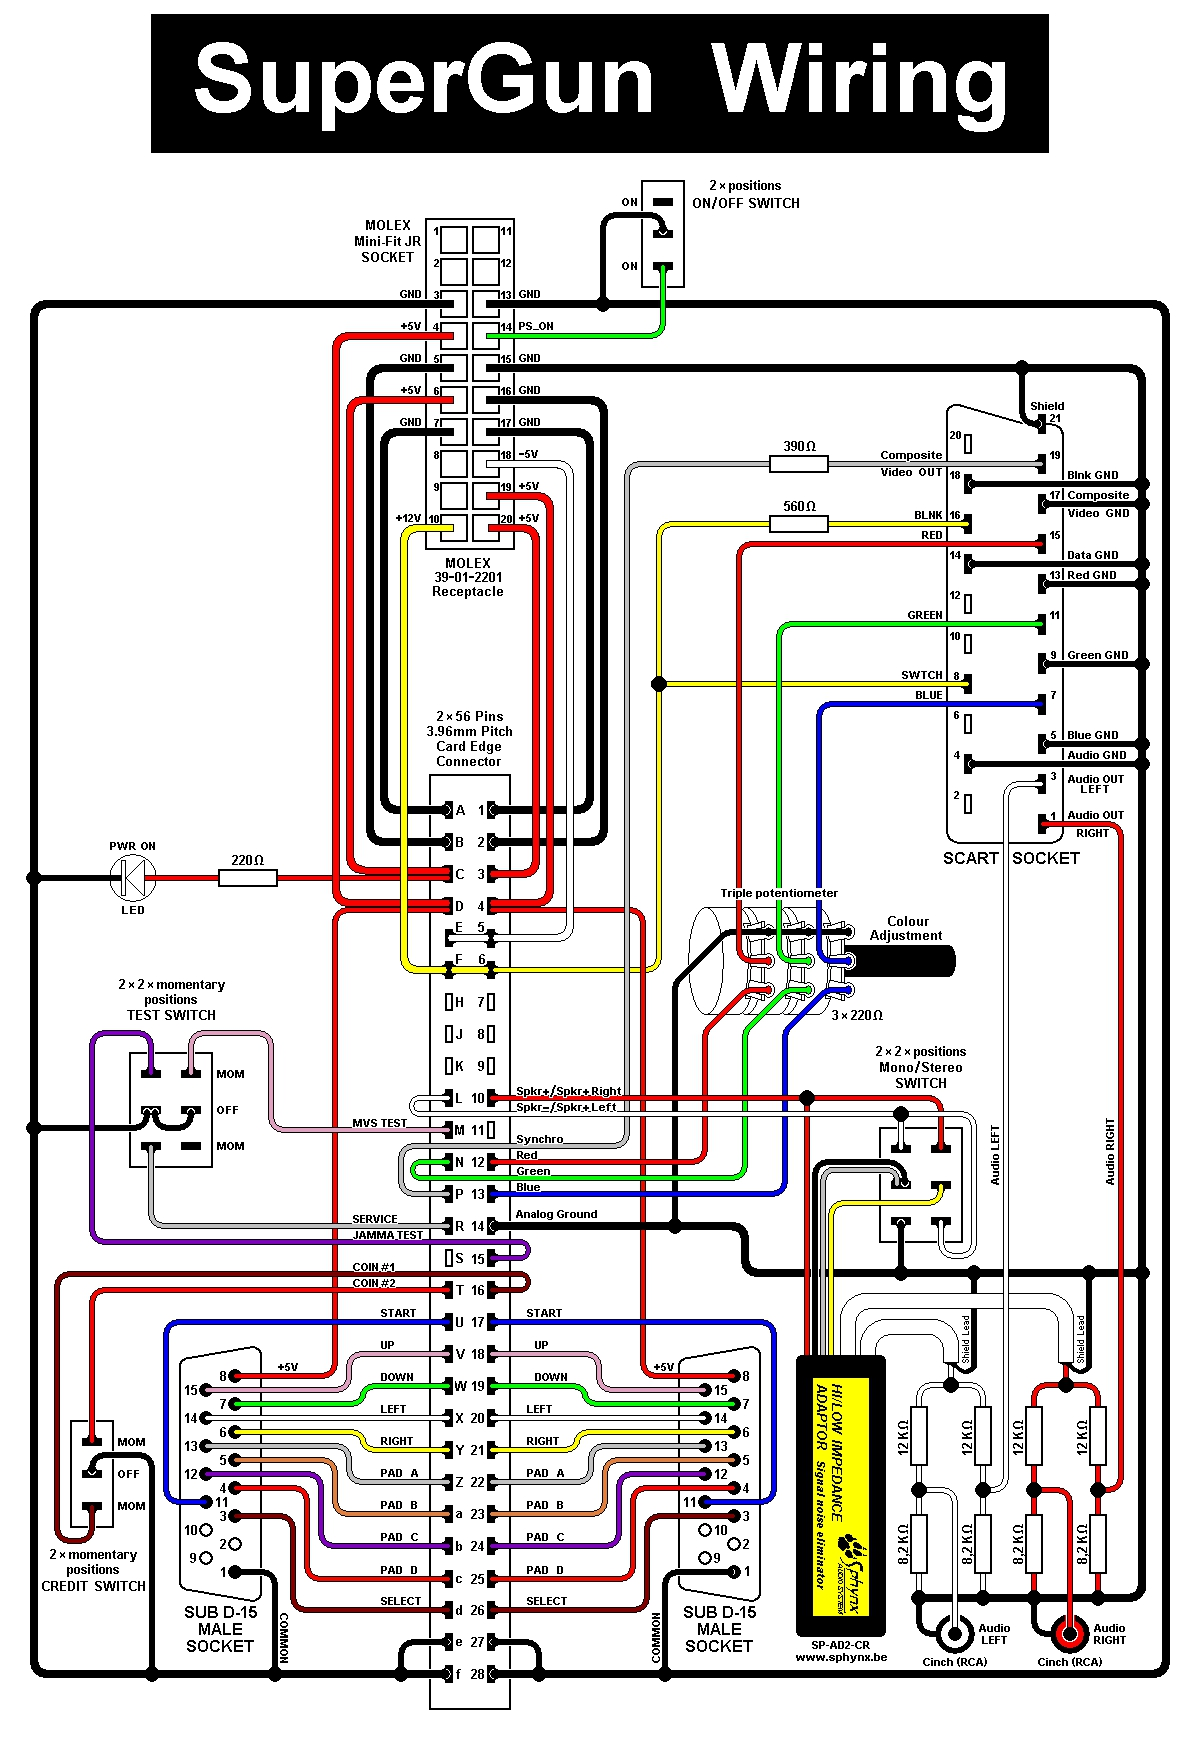 arcade game wiring diagram arcade game wiring diagram jamma supergun - 8bitplus